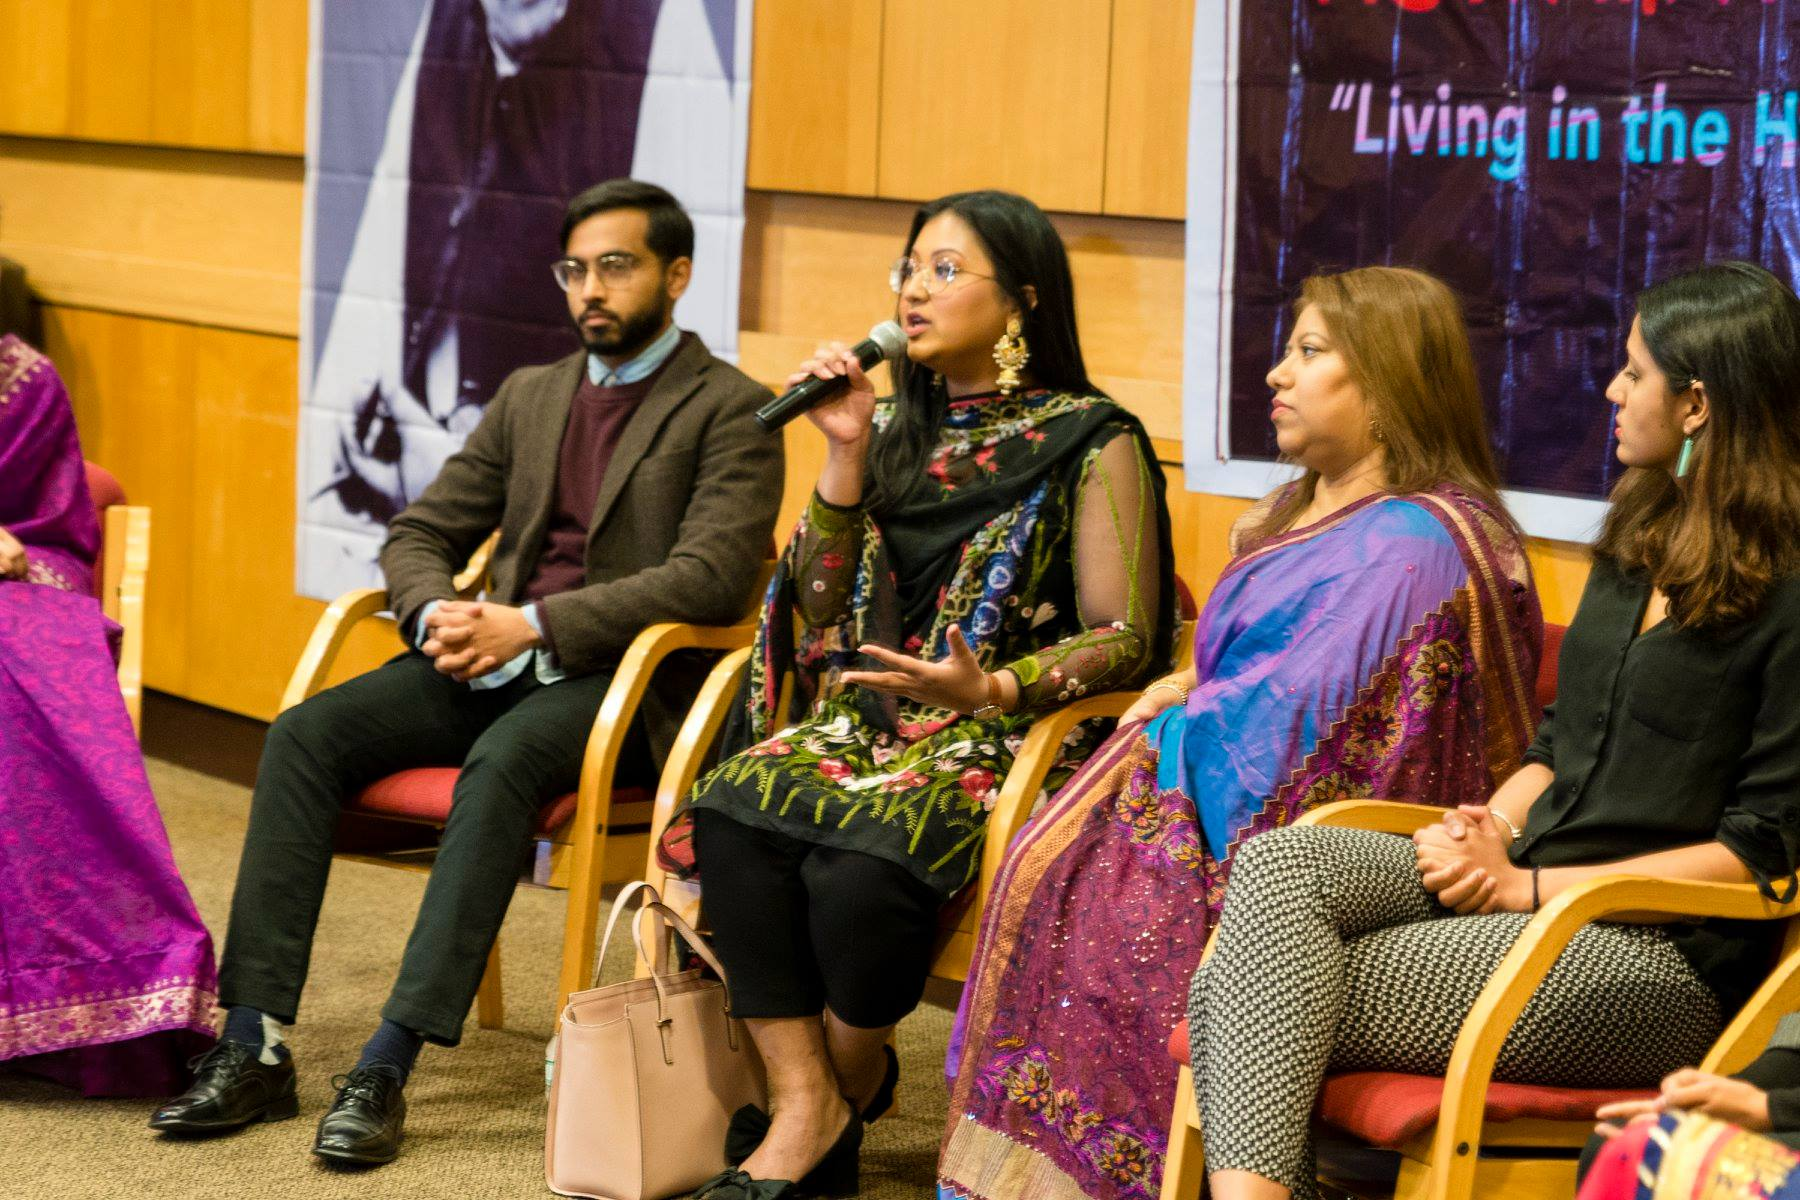 2020-ypf-panel-discussion-photo-by-wasi-ferdous-55591715